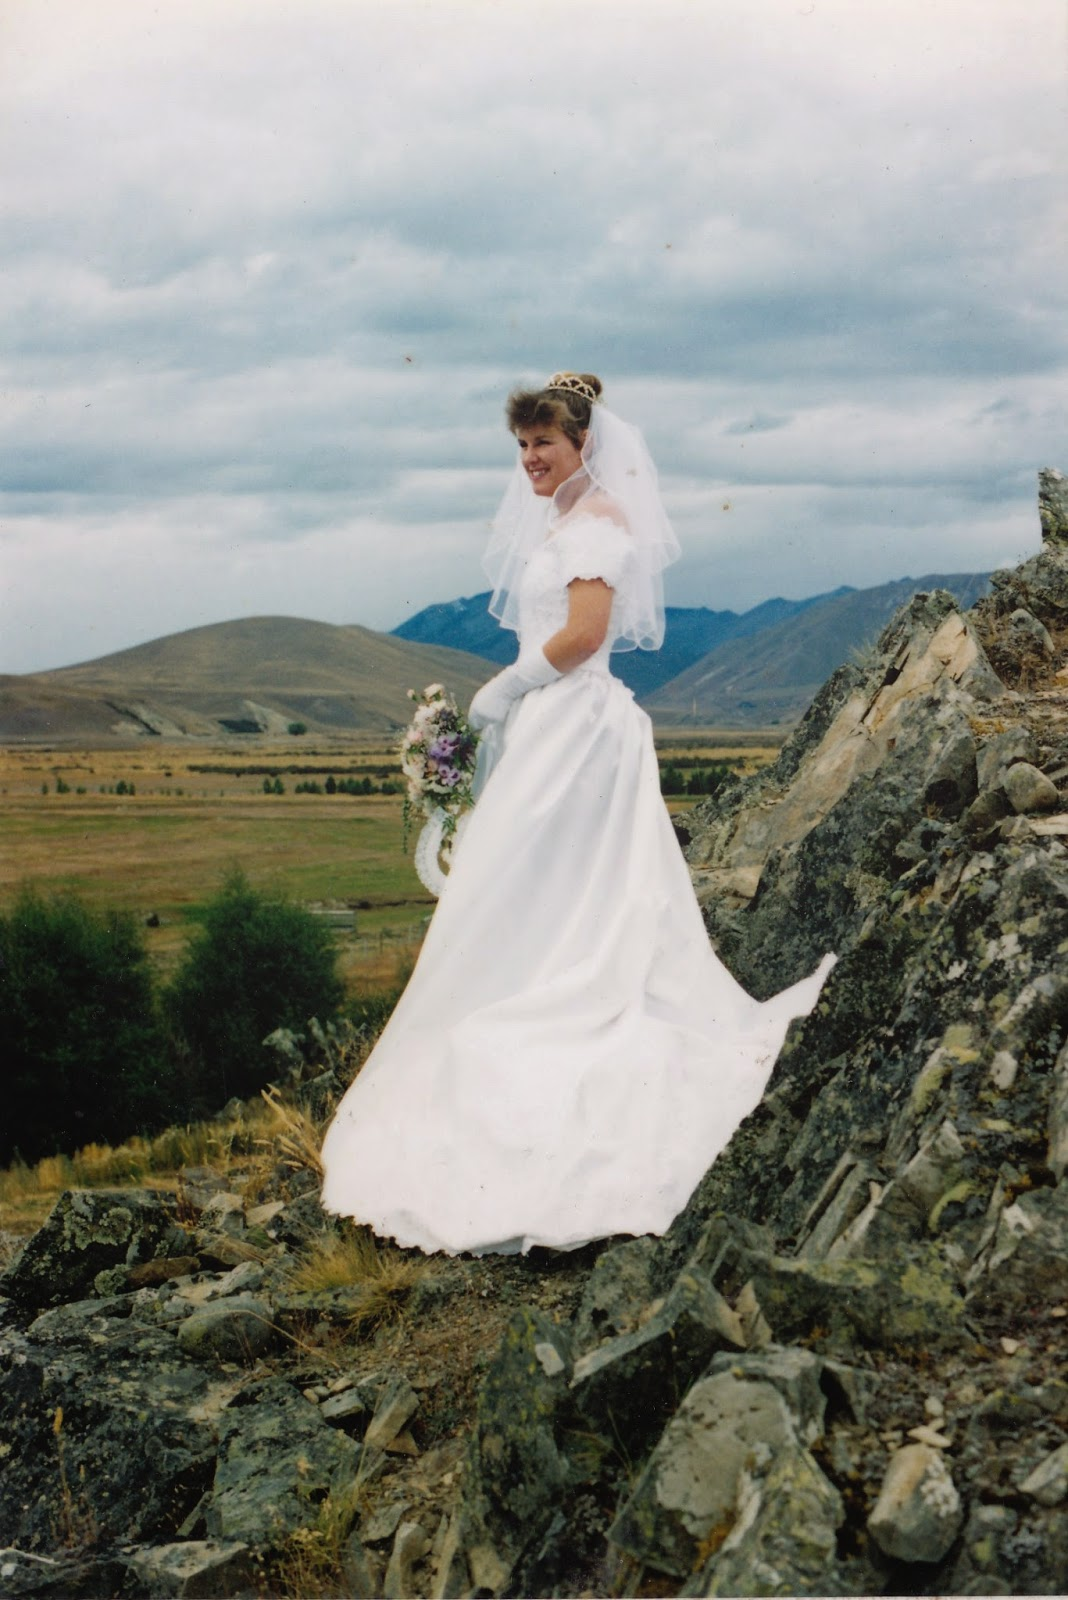 Gail - my eldest daughter - Nymph of the MacKenzie Country